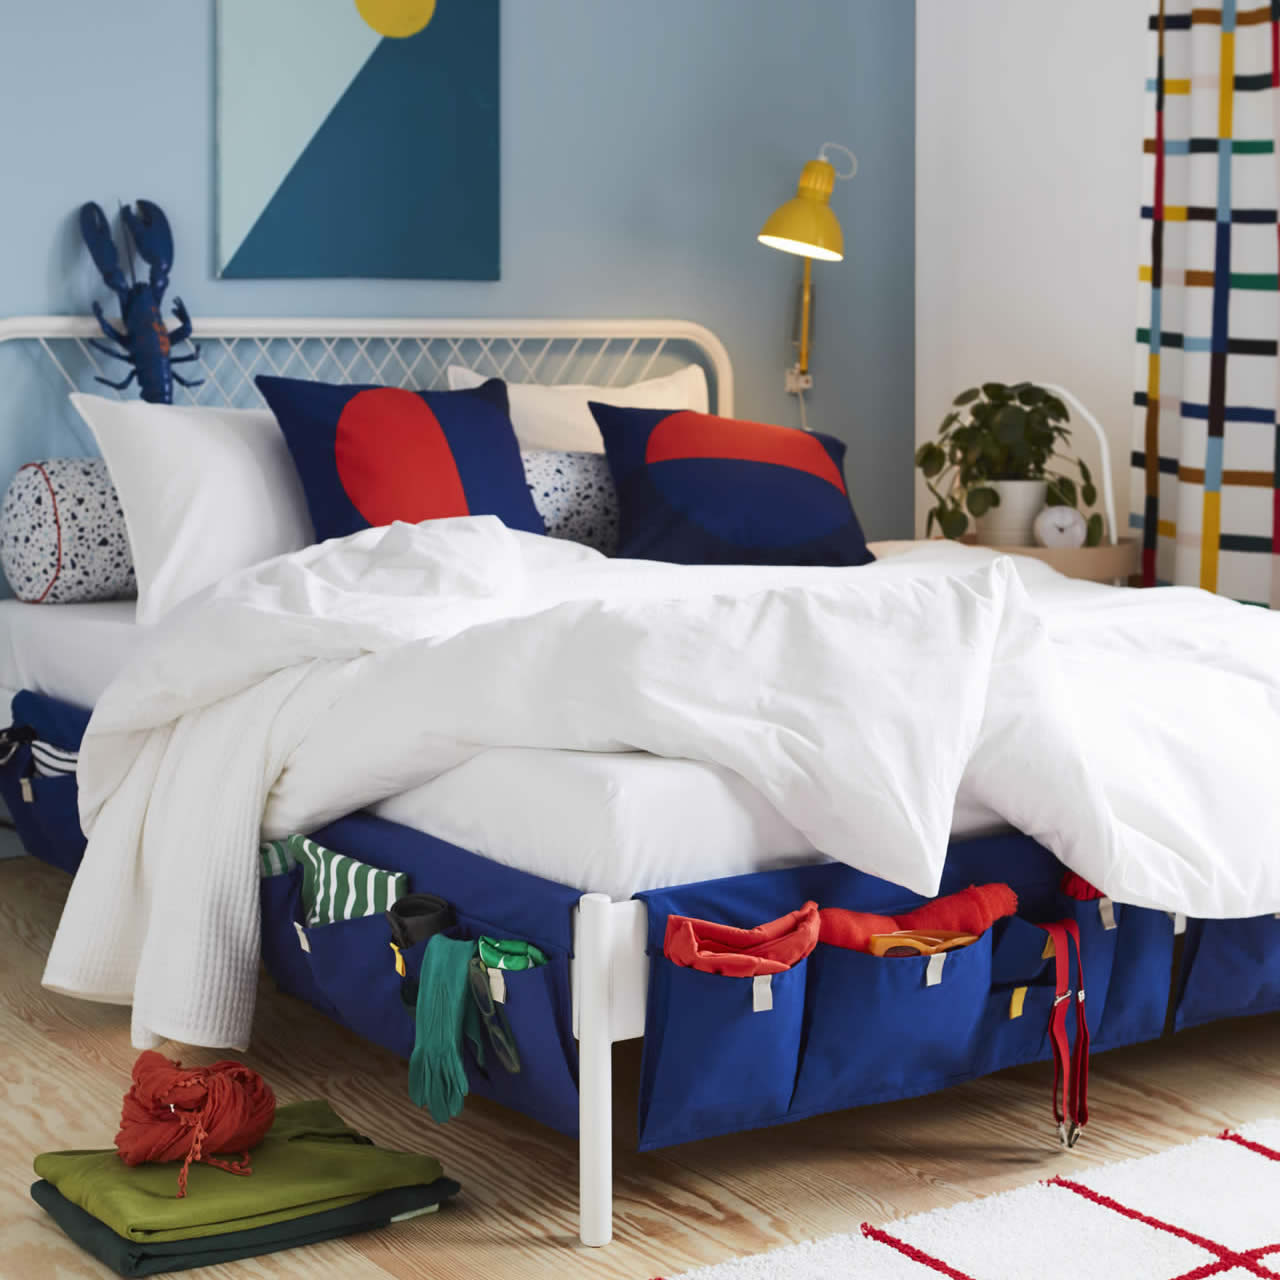 IKEA Ideas - Innovative bedroom storage - and how to hide it